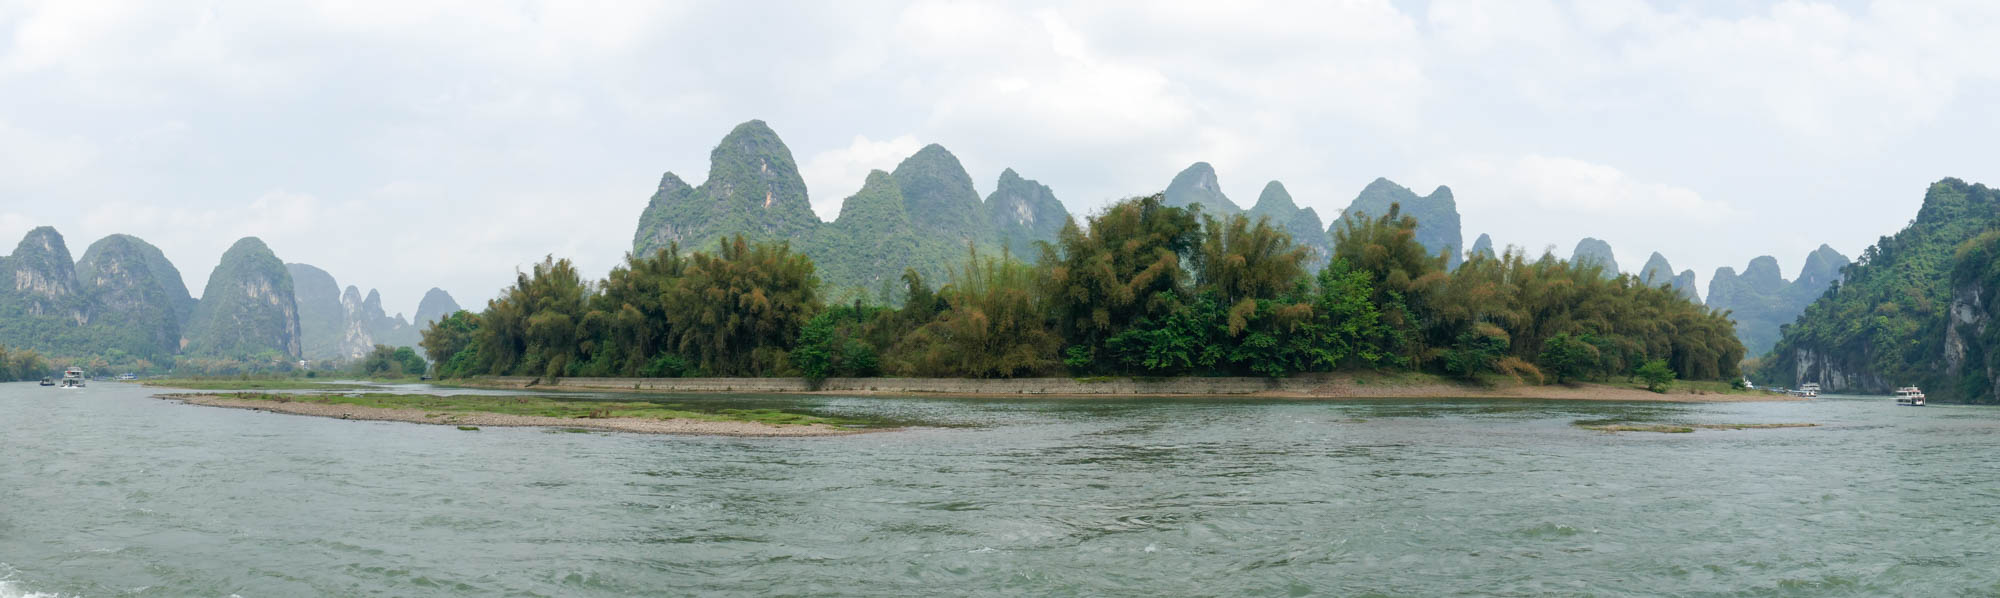 Panorama of karsts on Li River cruise